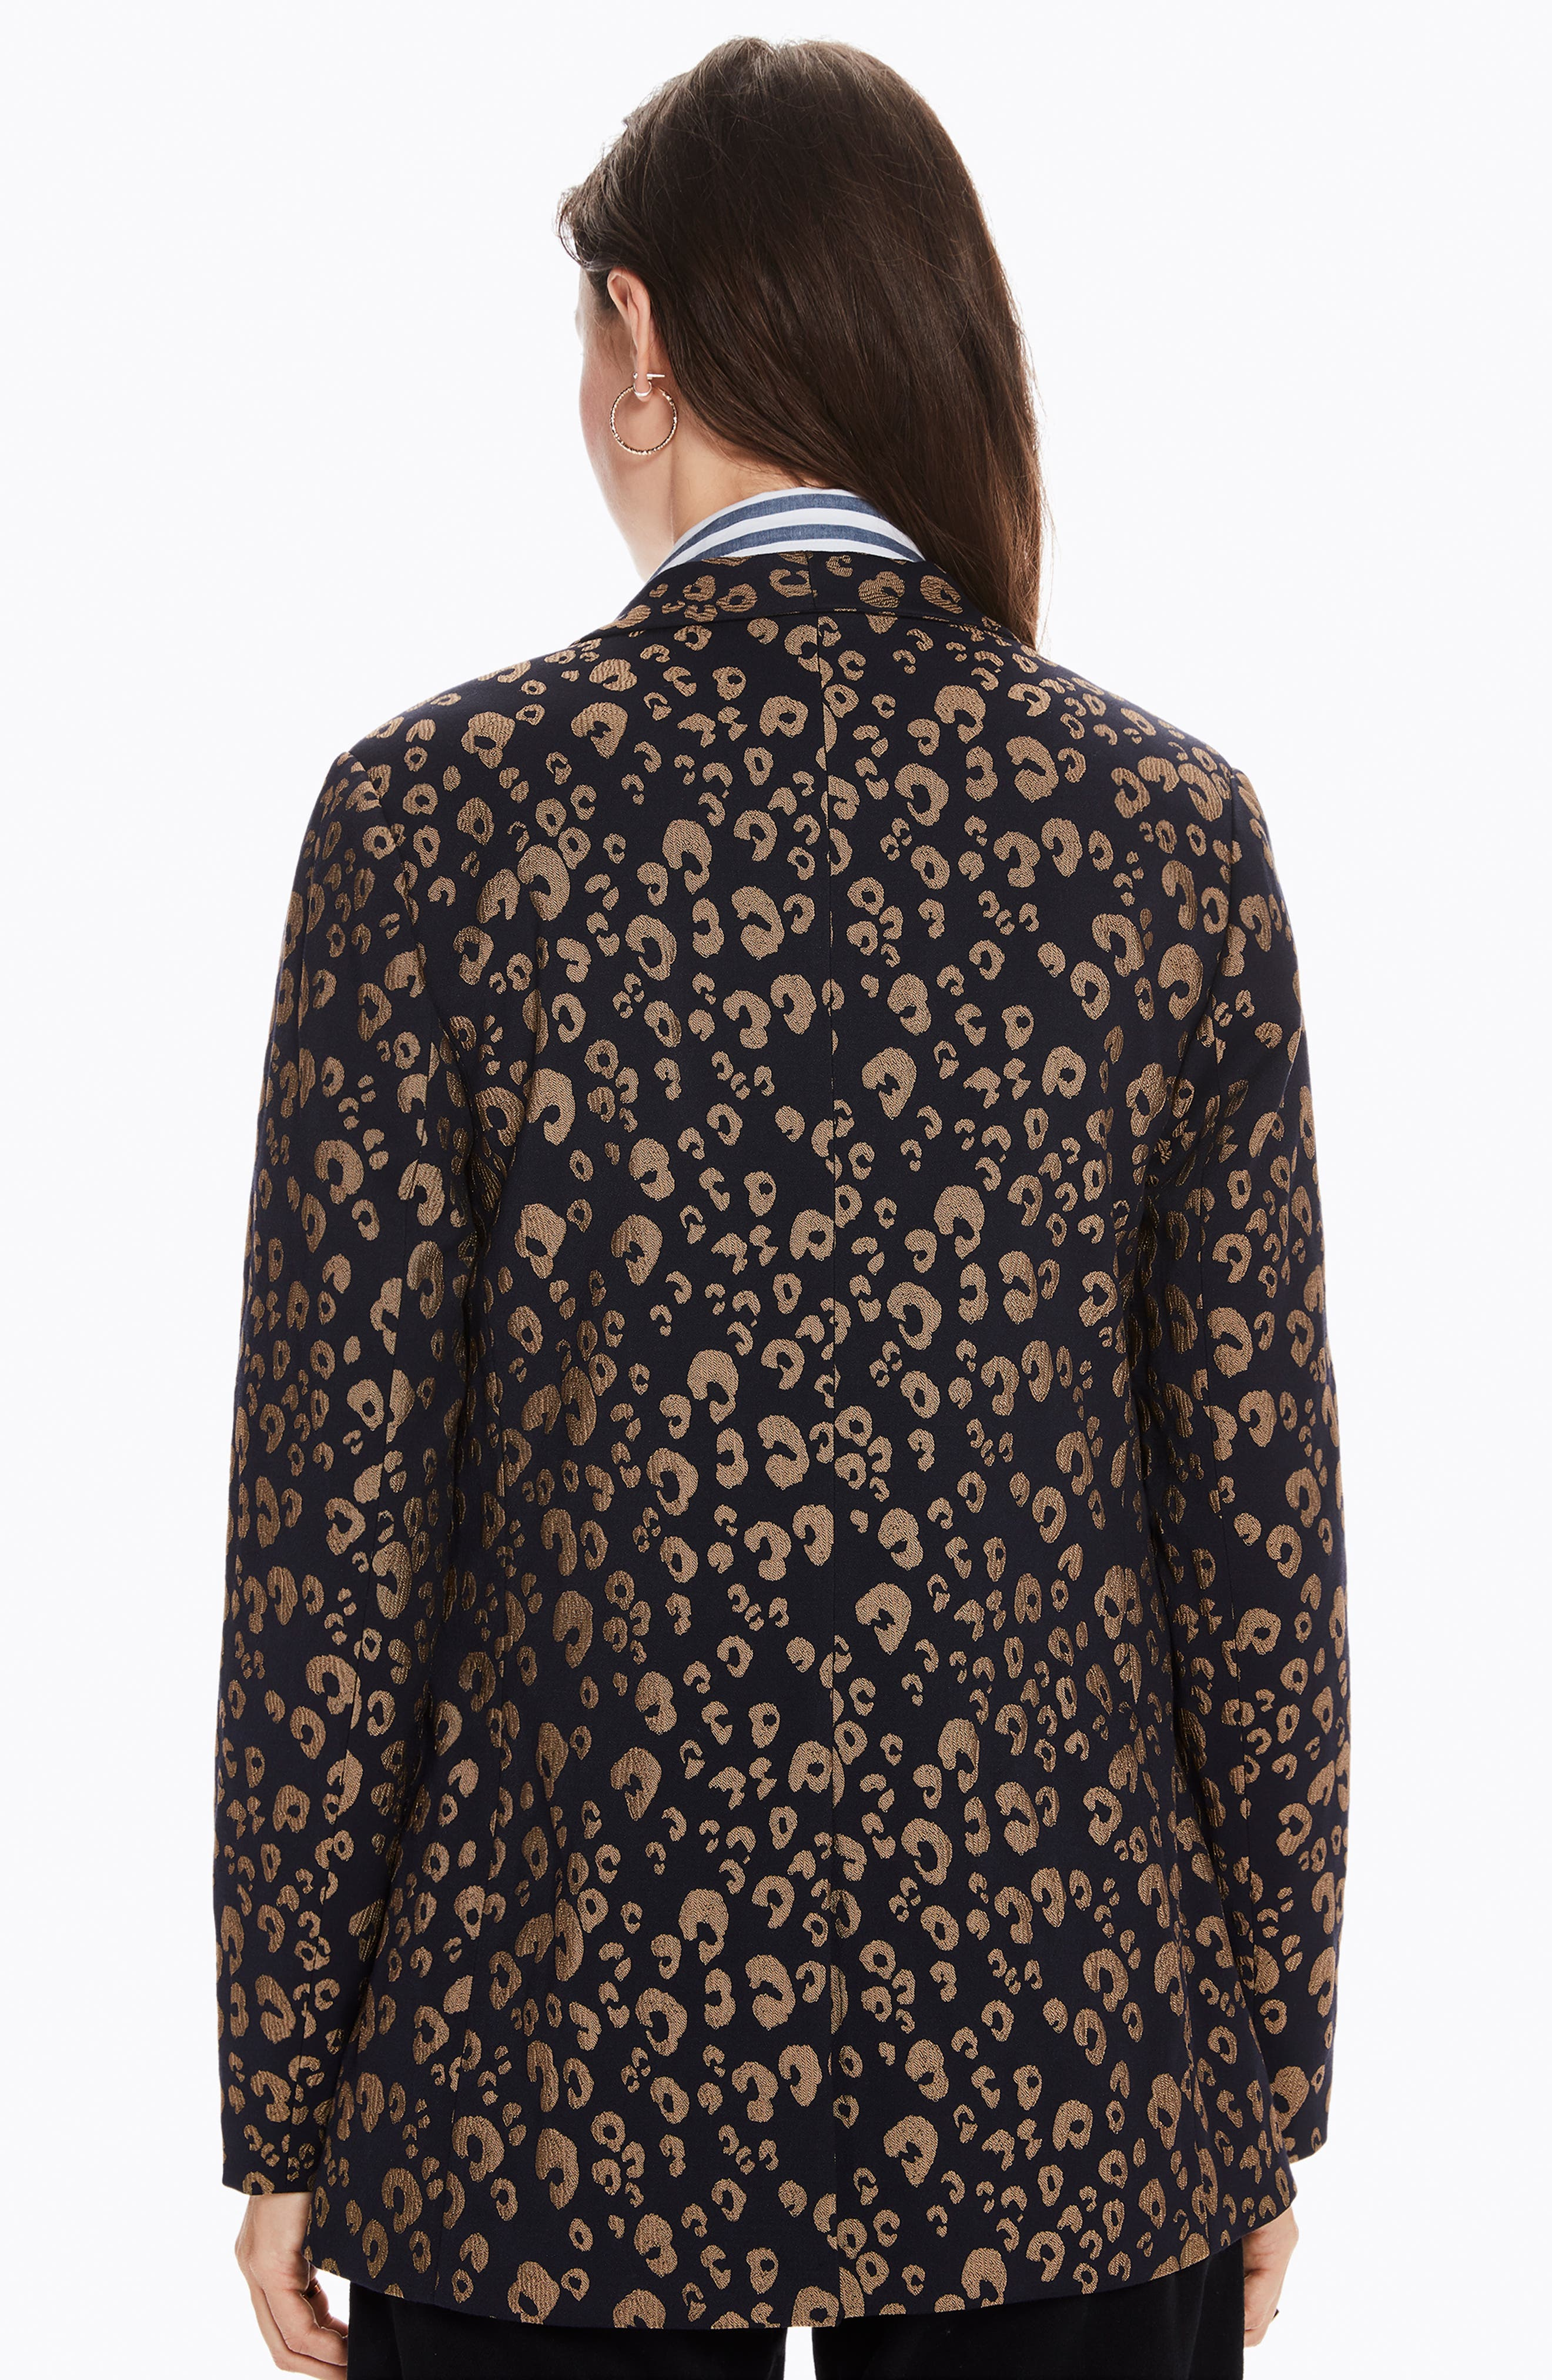 Stretch Jacquard Tailored Blazer,                             Alternate thumbnail 9, color,                             NAVY W/ GOLD LEOPARD PRINT